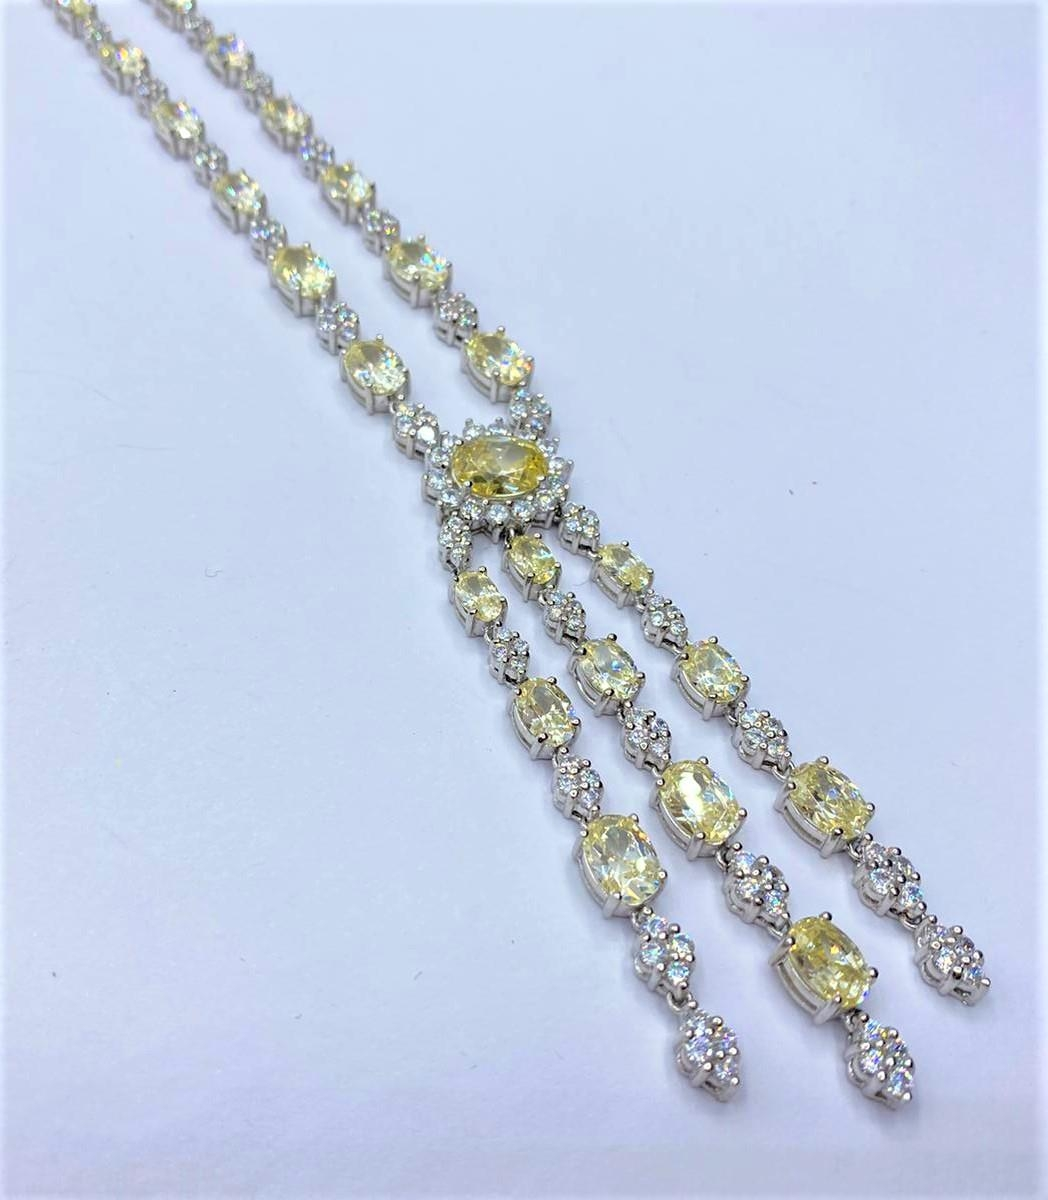 Silver heavy NECKLACE with white and yellow stones. 45.78g 40cm. - Image 3 of 3